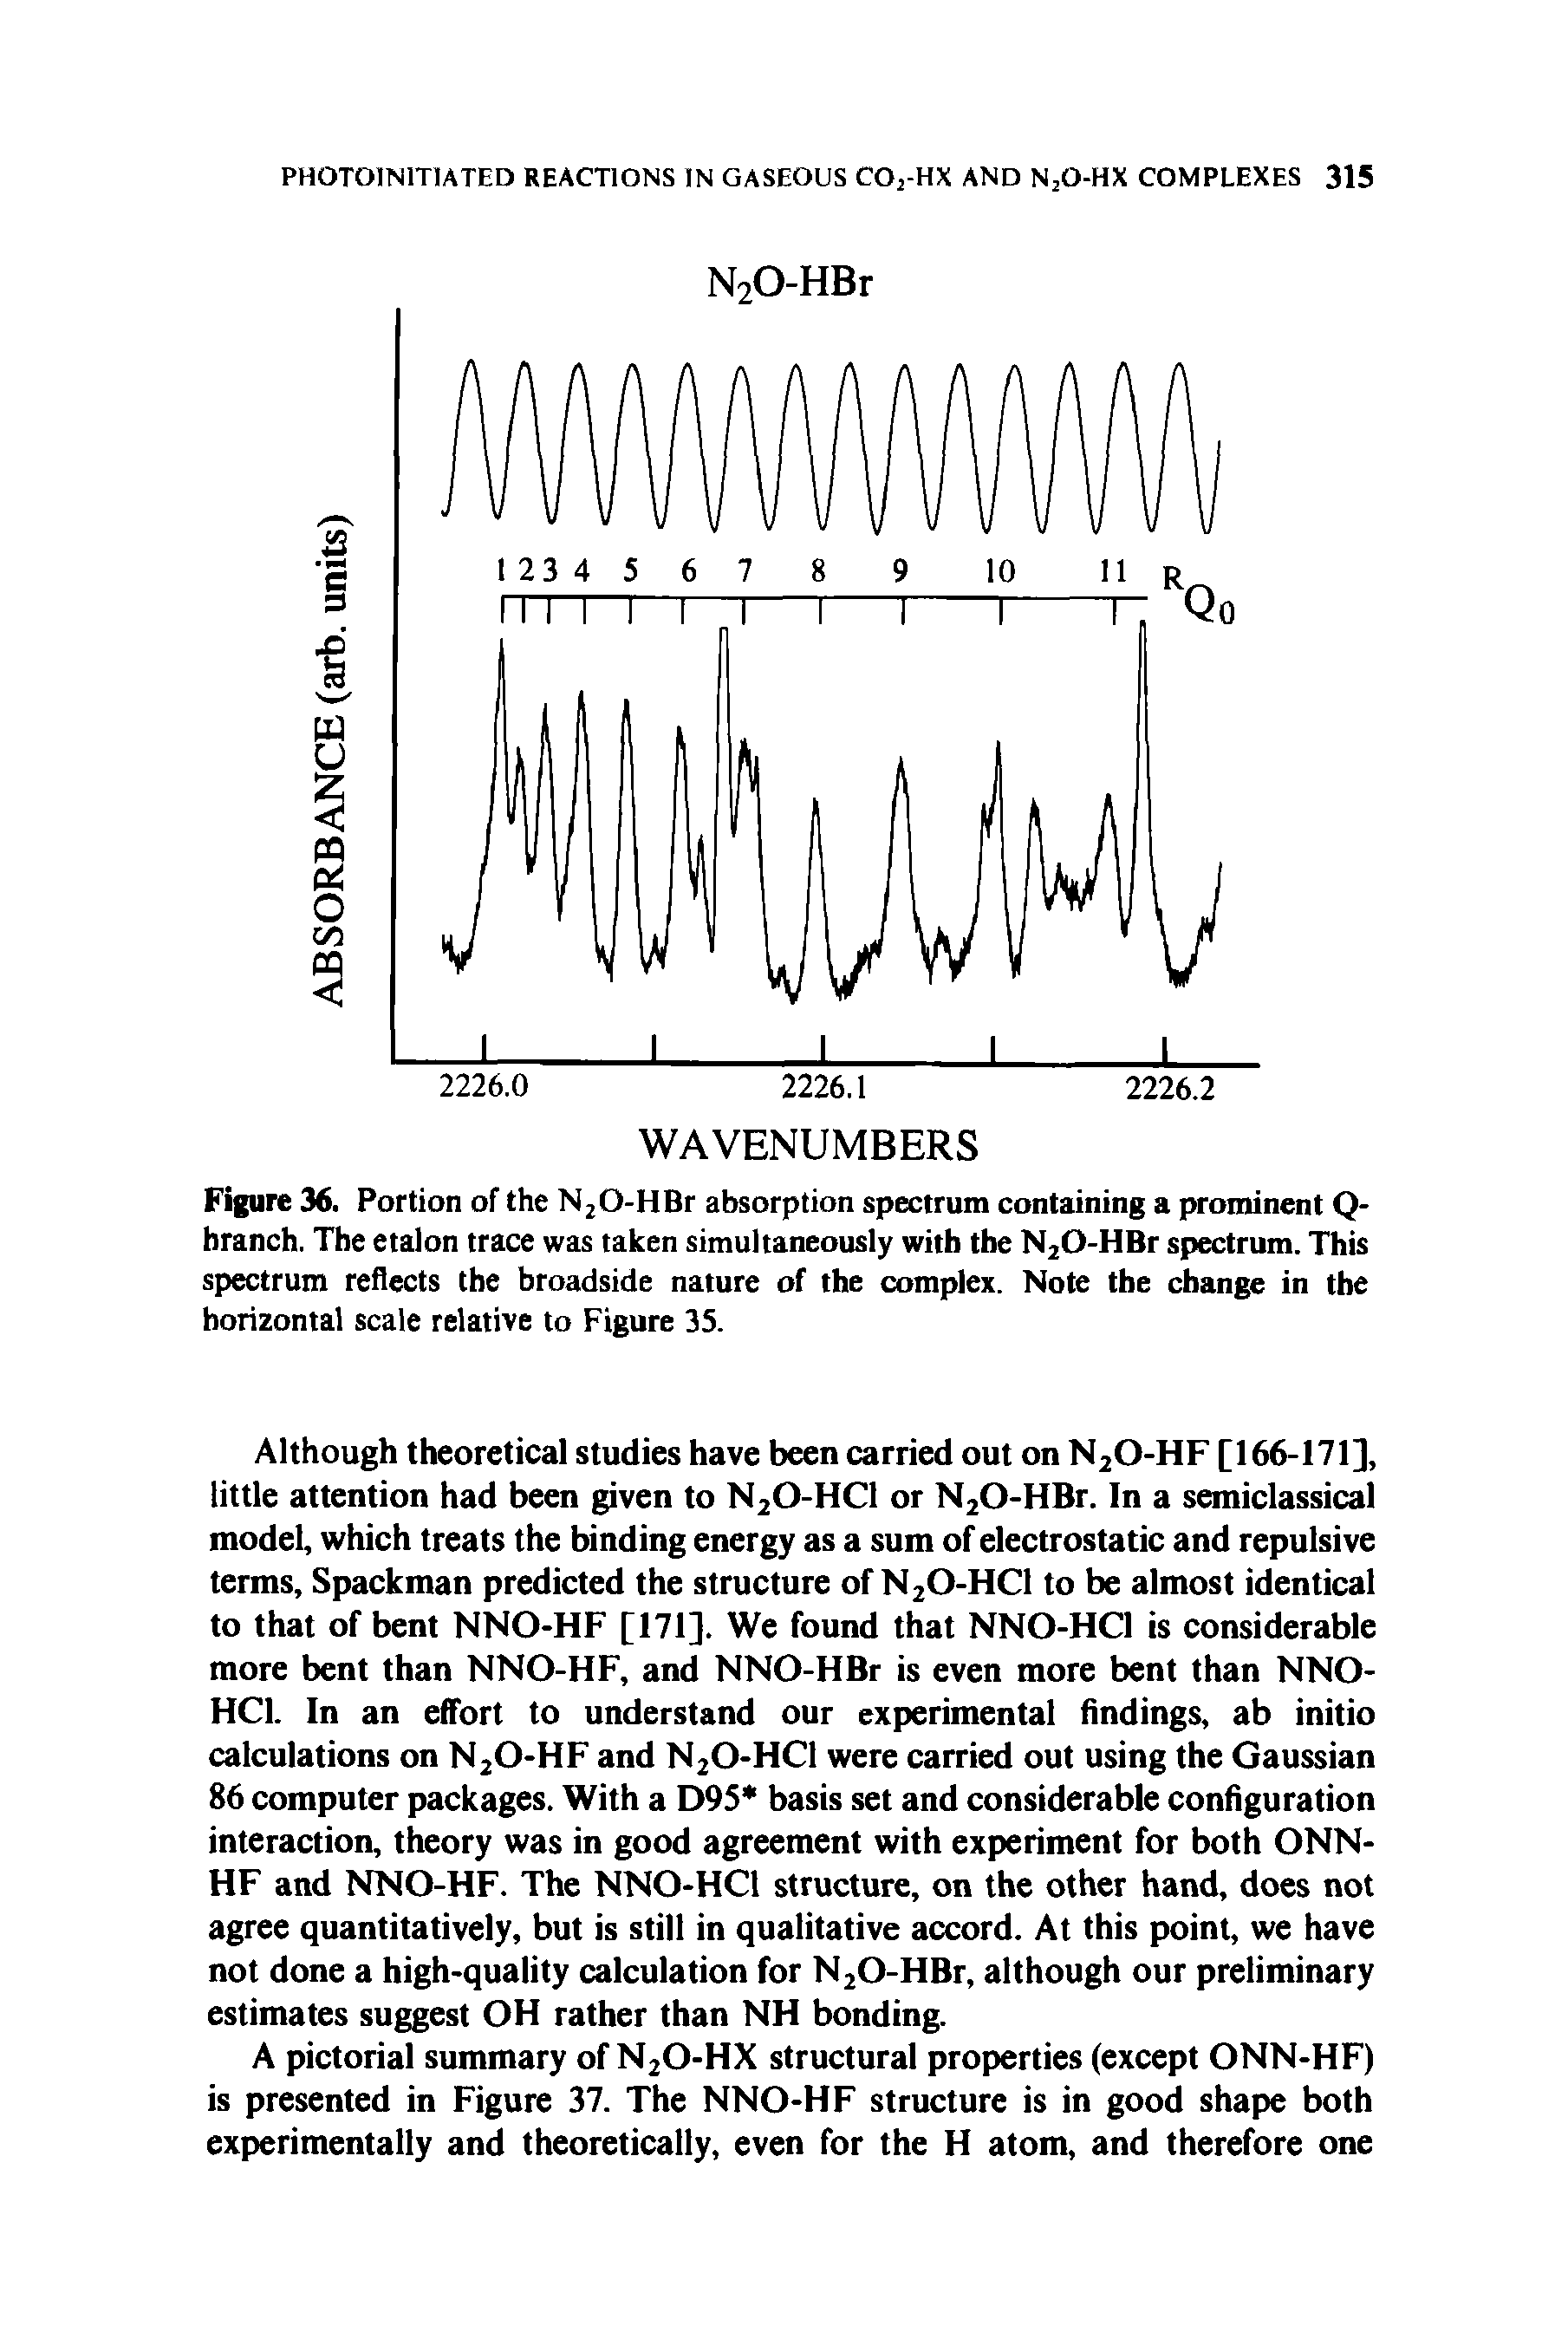 "Figure 36. Portion of the NjO-HBr <a href=""/info/nad_absorption_spectrum"">absorption spectrum</a> containing a prominent Q-branch. The etalon trace was taken <a href=""/info/s_with_simultaneous"">simultaneously with</a> the N20-HBr spectrum. This <a href=""/info/reflectance_atr_spectrum"">spectrum reflects</a> the broadside nature of the complex. Note the change in the <a href=""/info/scale_horizontal_and"">horizontal scale</a> relative to Figure 35."